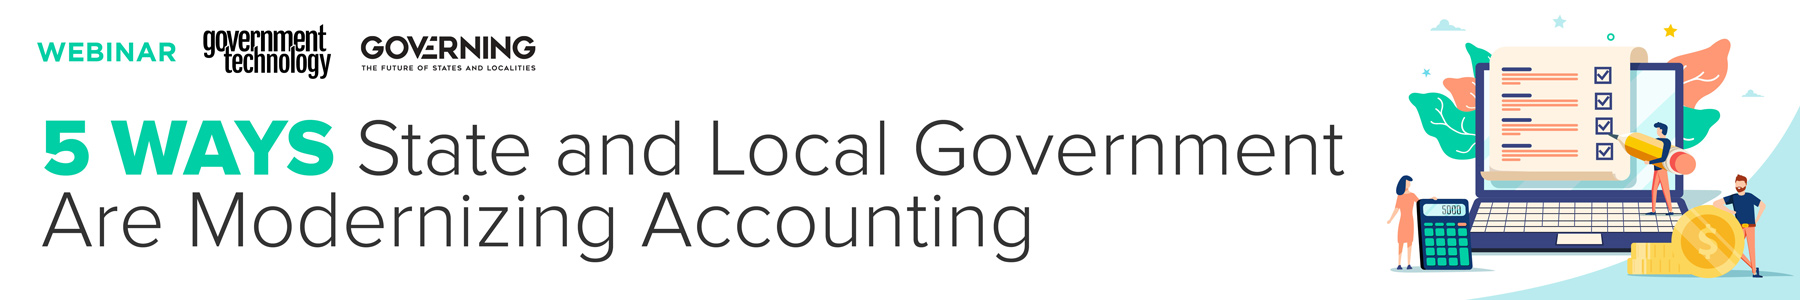 5 Ways State and Local Government Are Modernizing Accounting